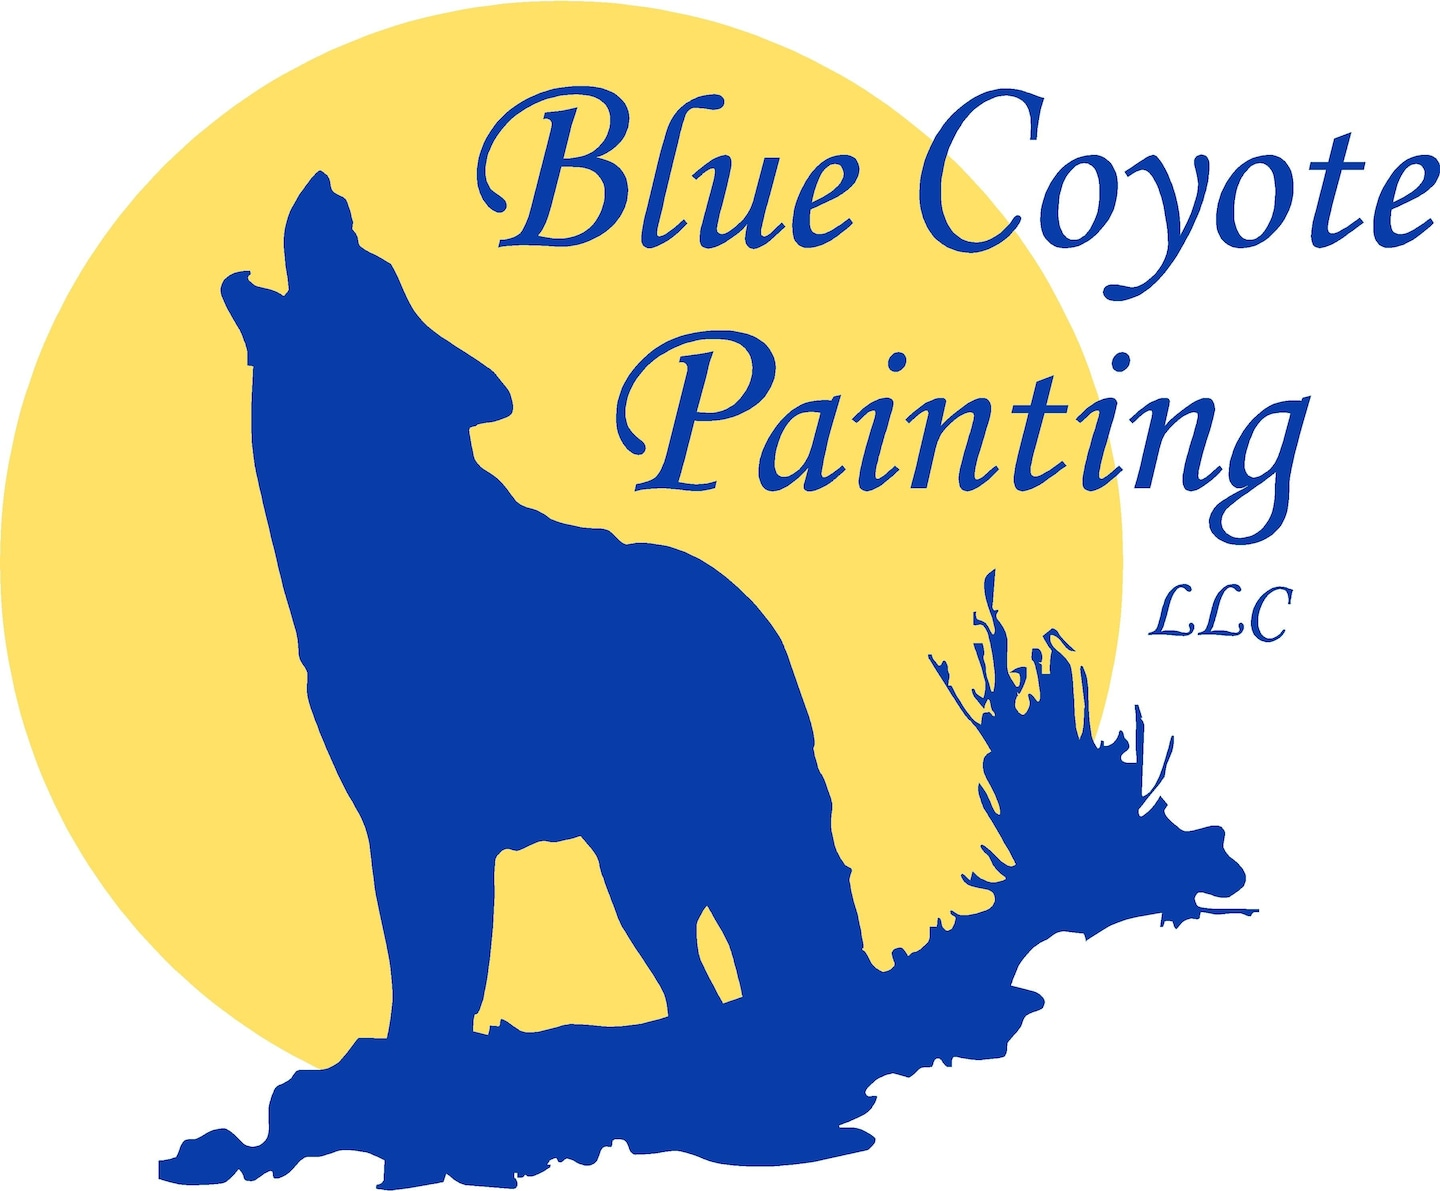 Blue Coyote Painting LLC